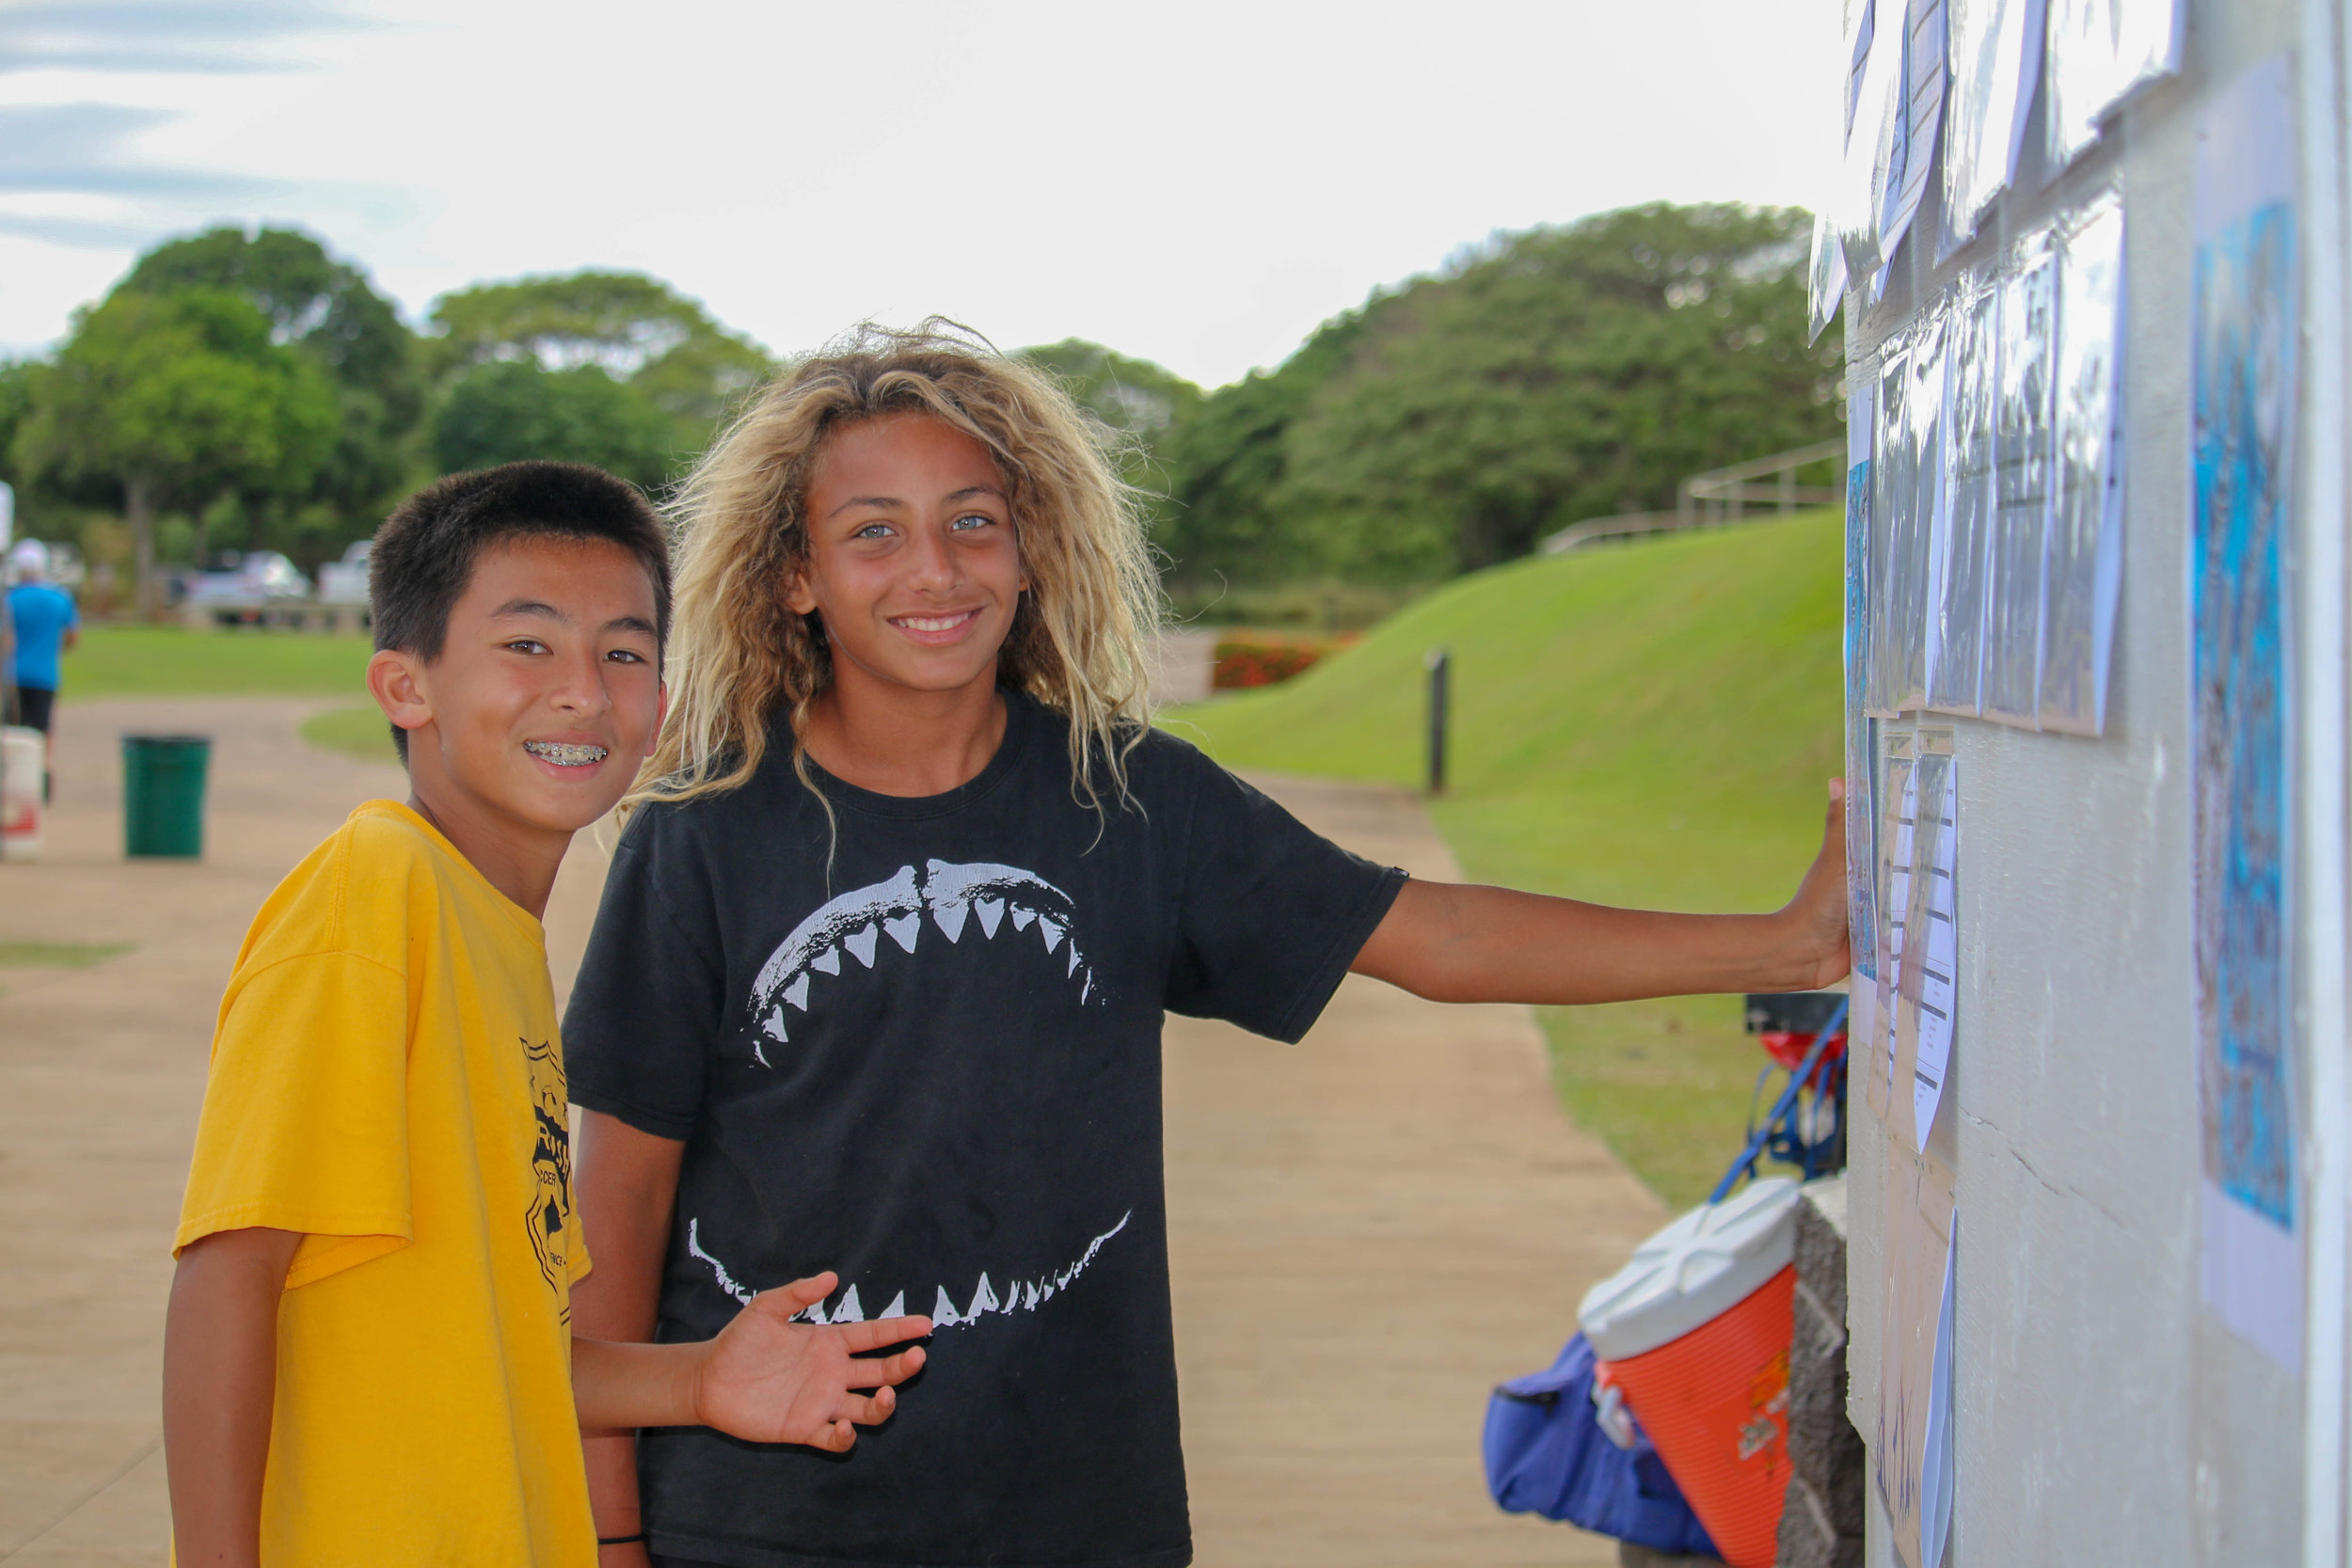 Big Island players checking the scores and standings at the US Club Soccer Hawai'i State Cup 17.